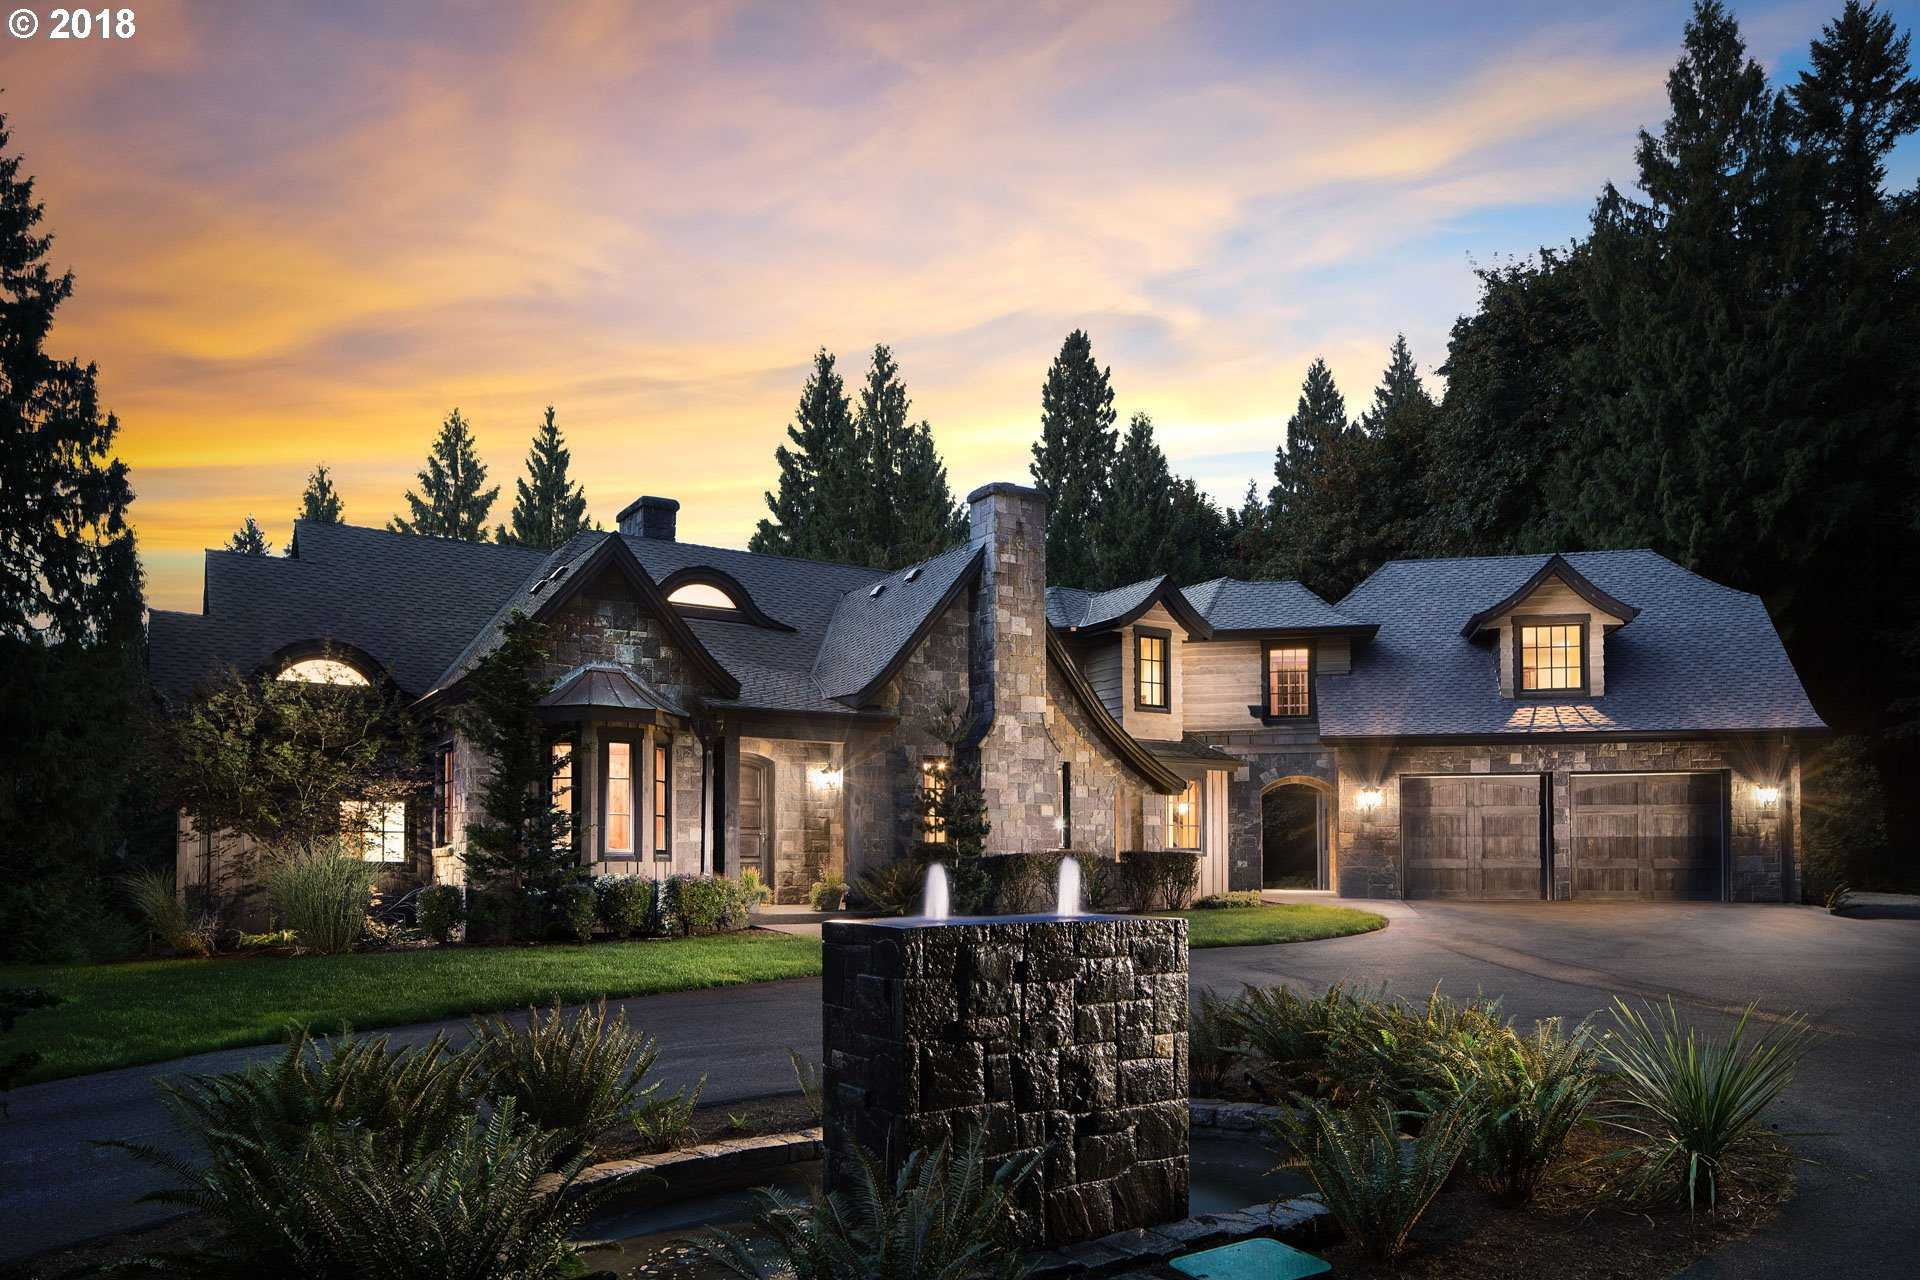 $1,899,999 - 4Br/5Ba -  for Sale in West Linn